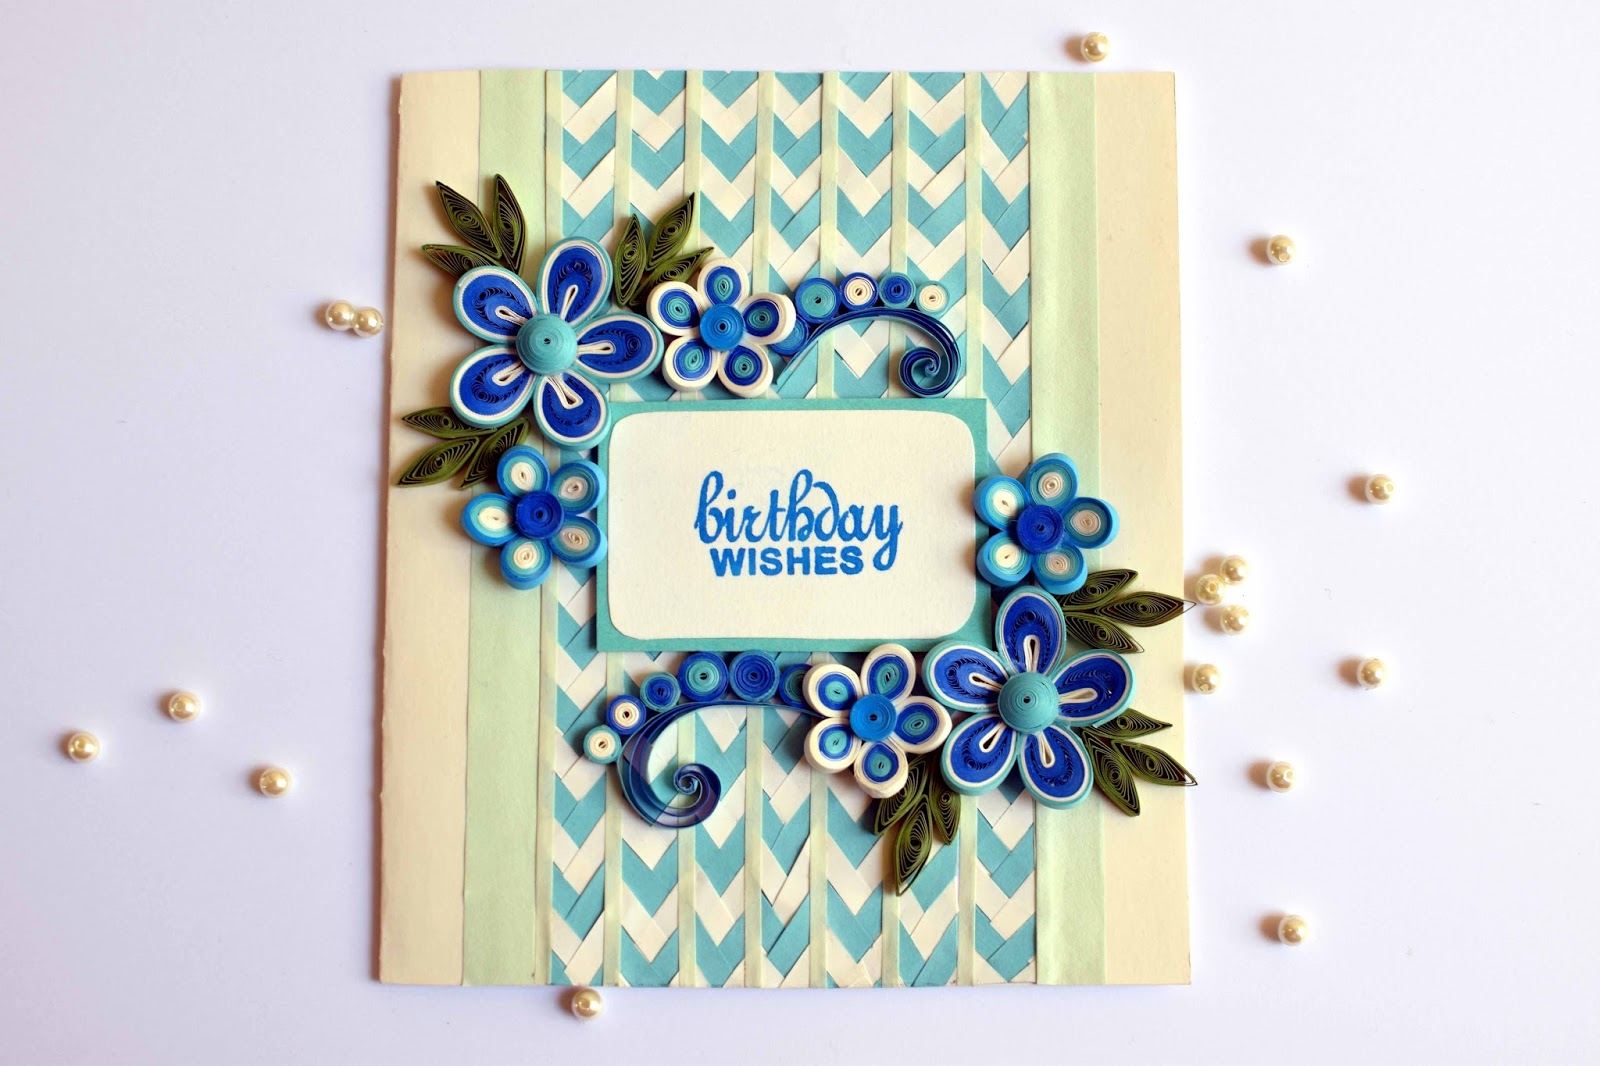 I Took 10 X 7 Card Stock For Base First Added Braided Pattern On It Then Arranged Flowers And Birthday Sentiment